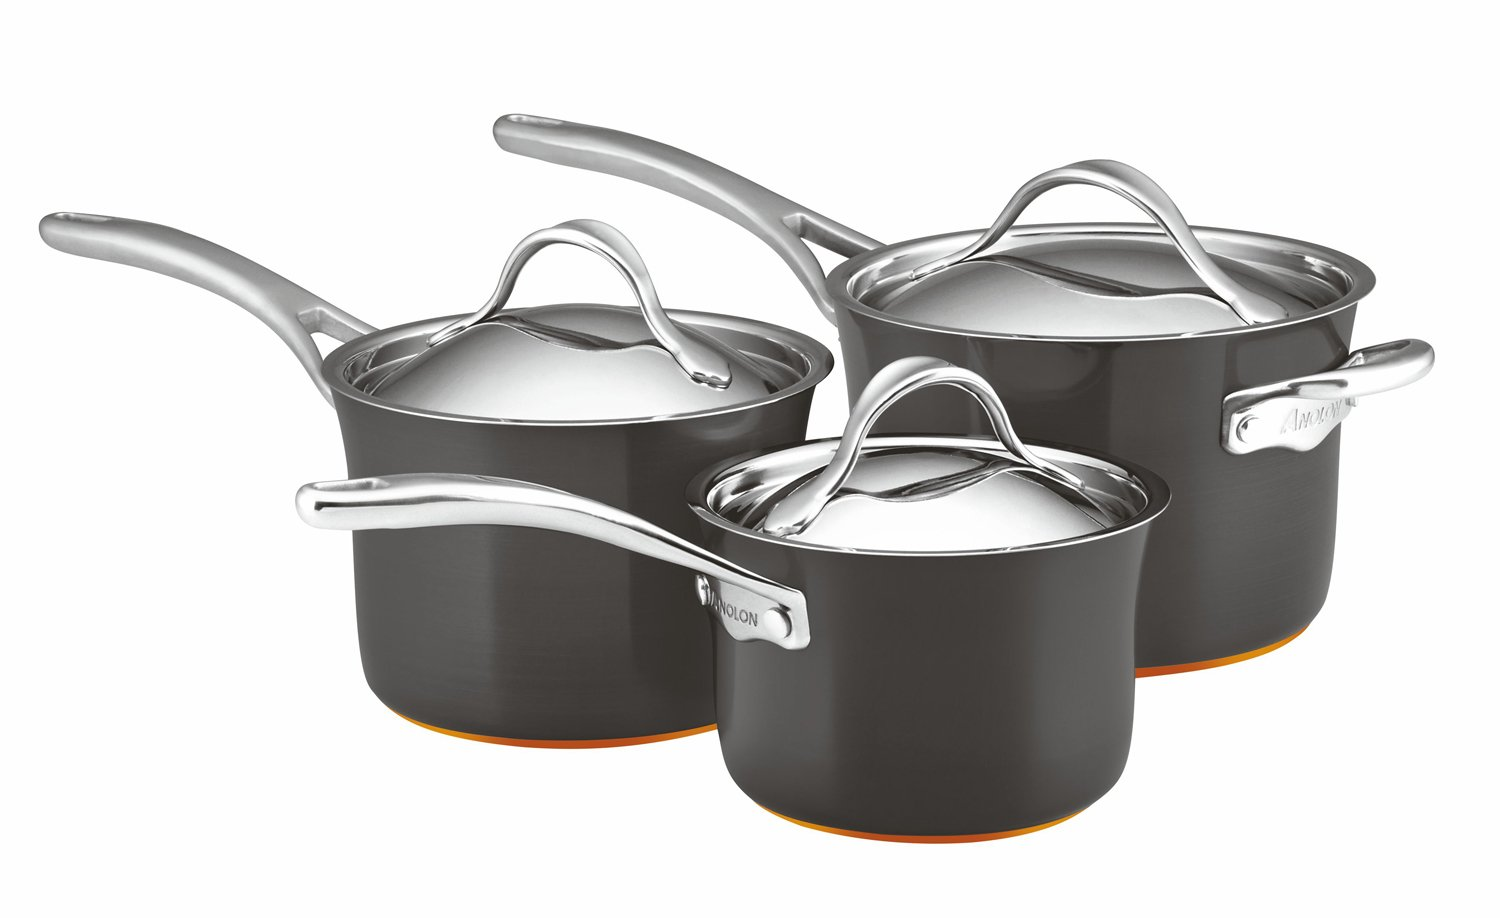 Anolon Nouvelle Copper 3 piece saucepan set